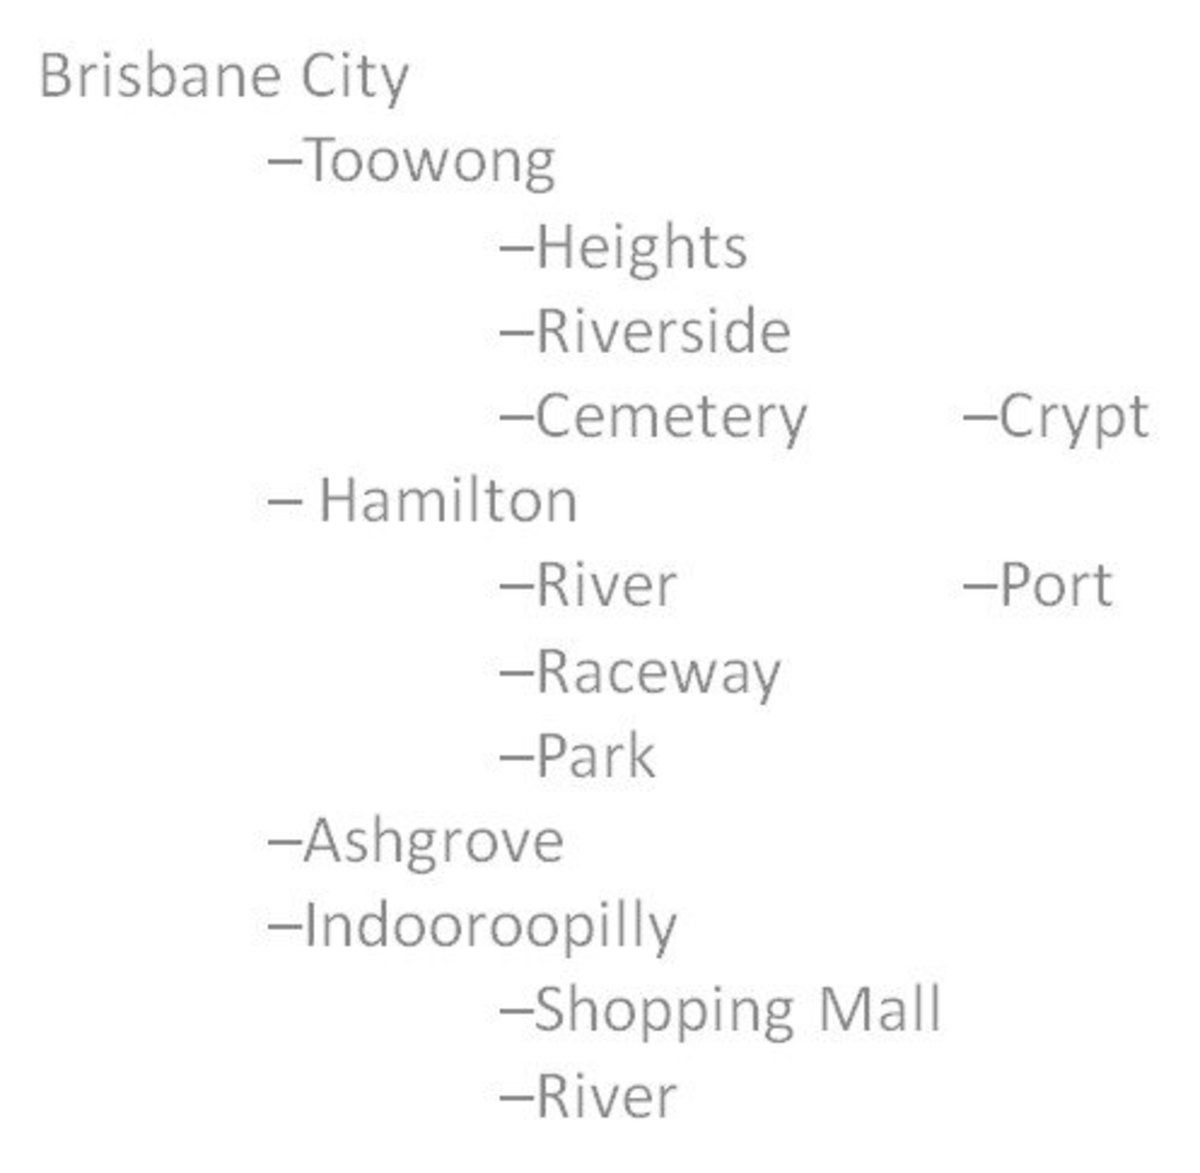 A map diagram for Brisbane City.